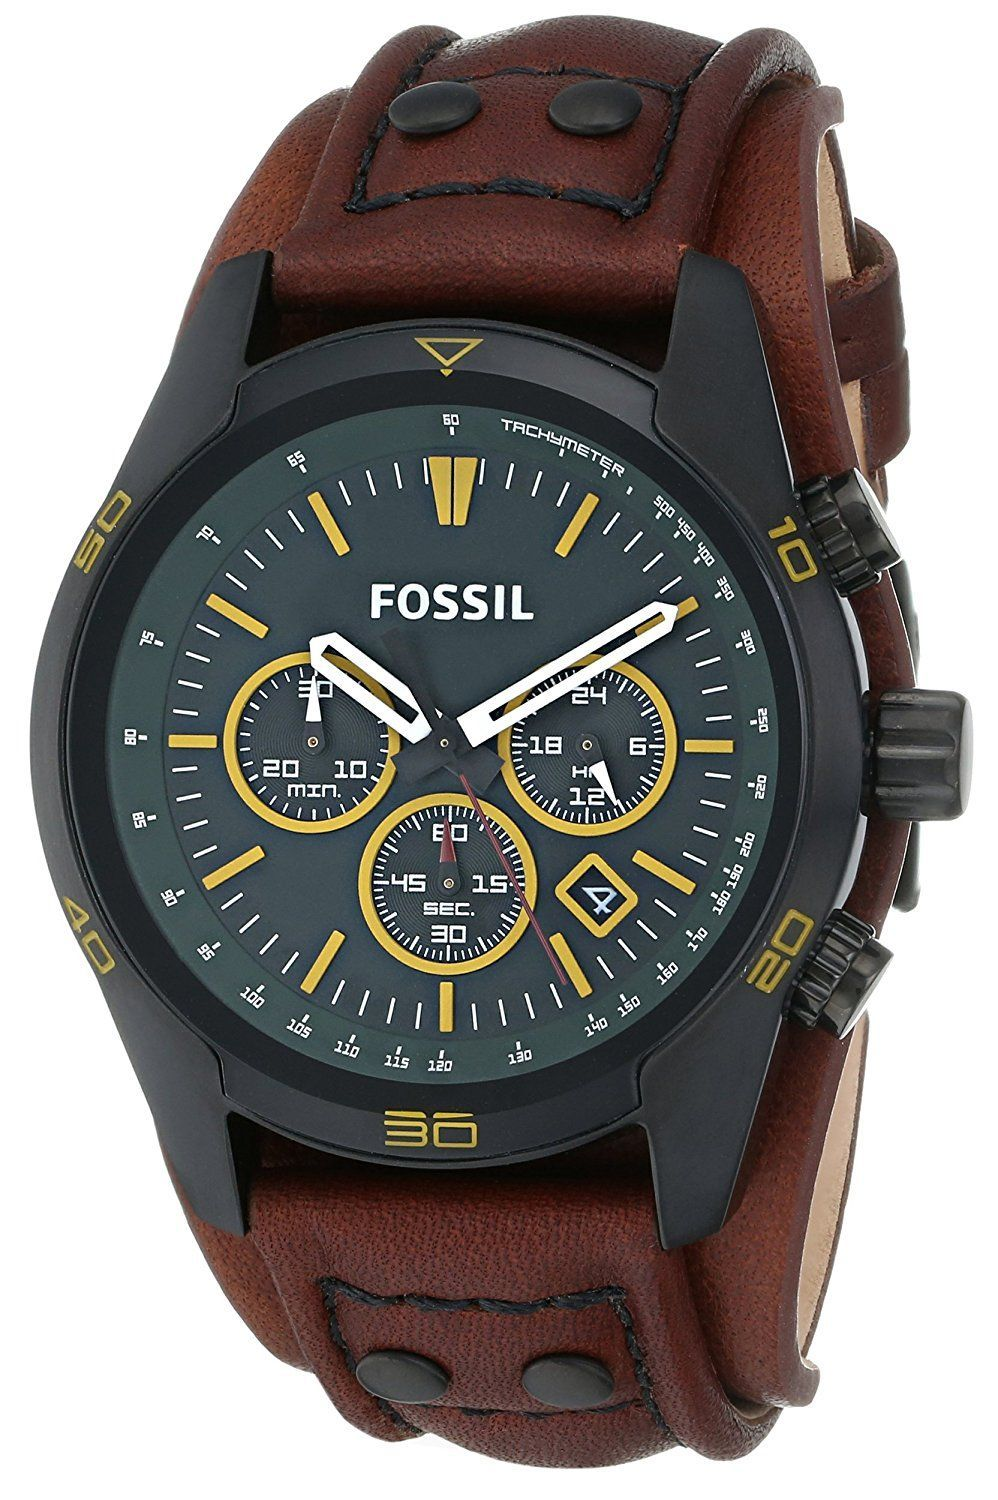 5fef3a3e8 Amazon.com: Fossil Men's CH2923 Coachman Chronograph Leather Watch - Brown  with Green Dial: Watches